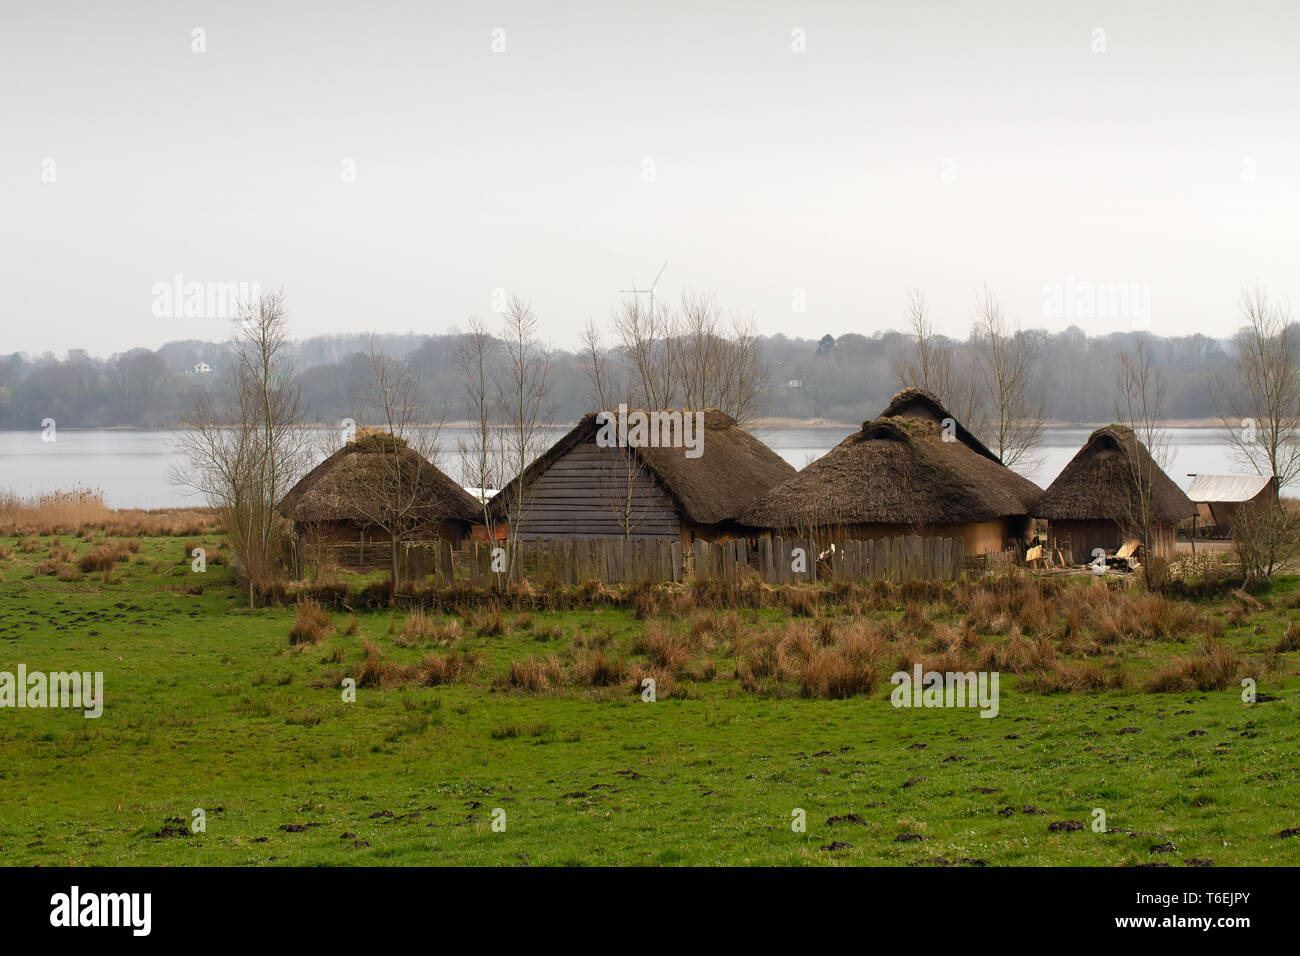 Historical huts in Germany - Stock Image